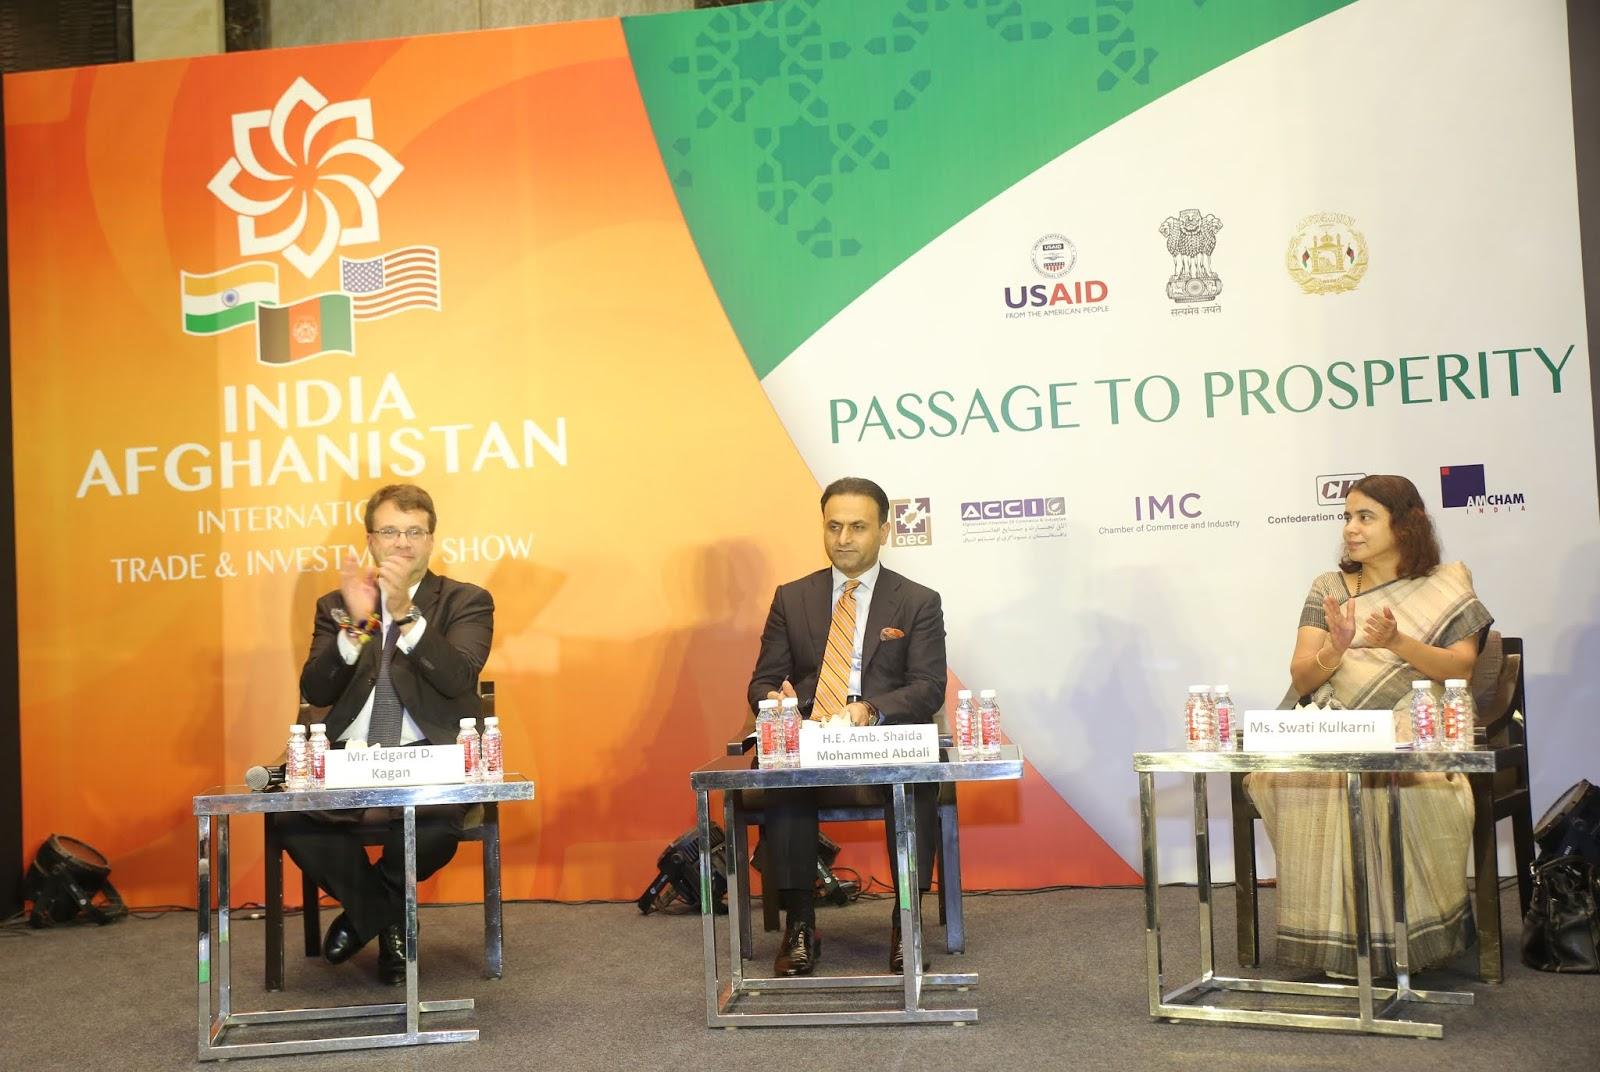 india afghanistan international trade and investment show to be held in mumbai